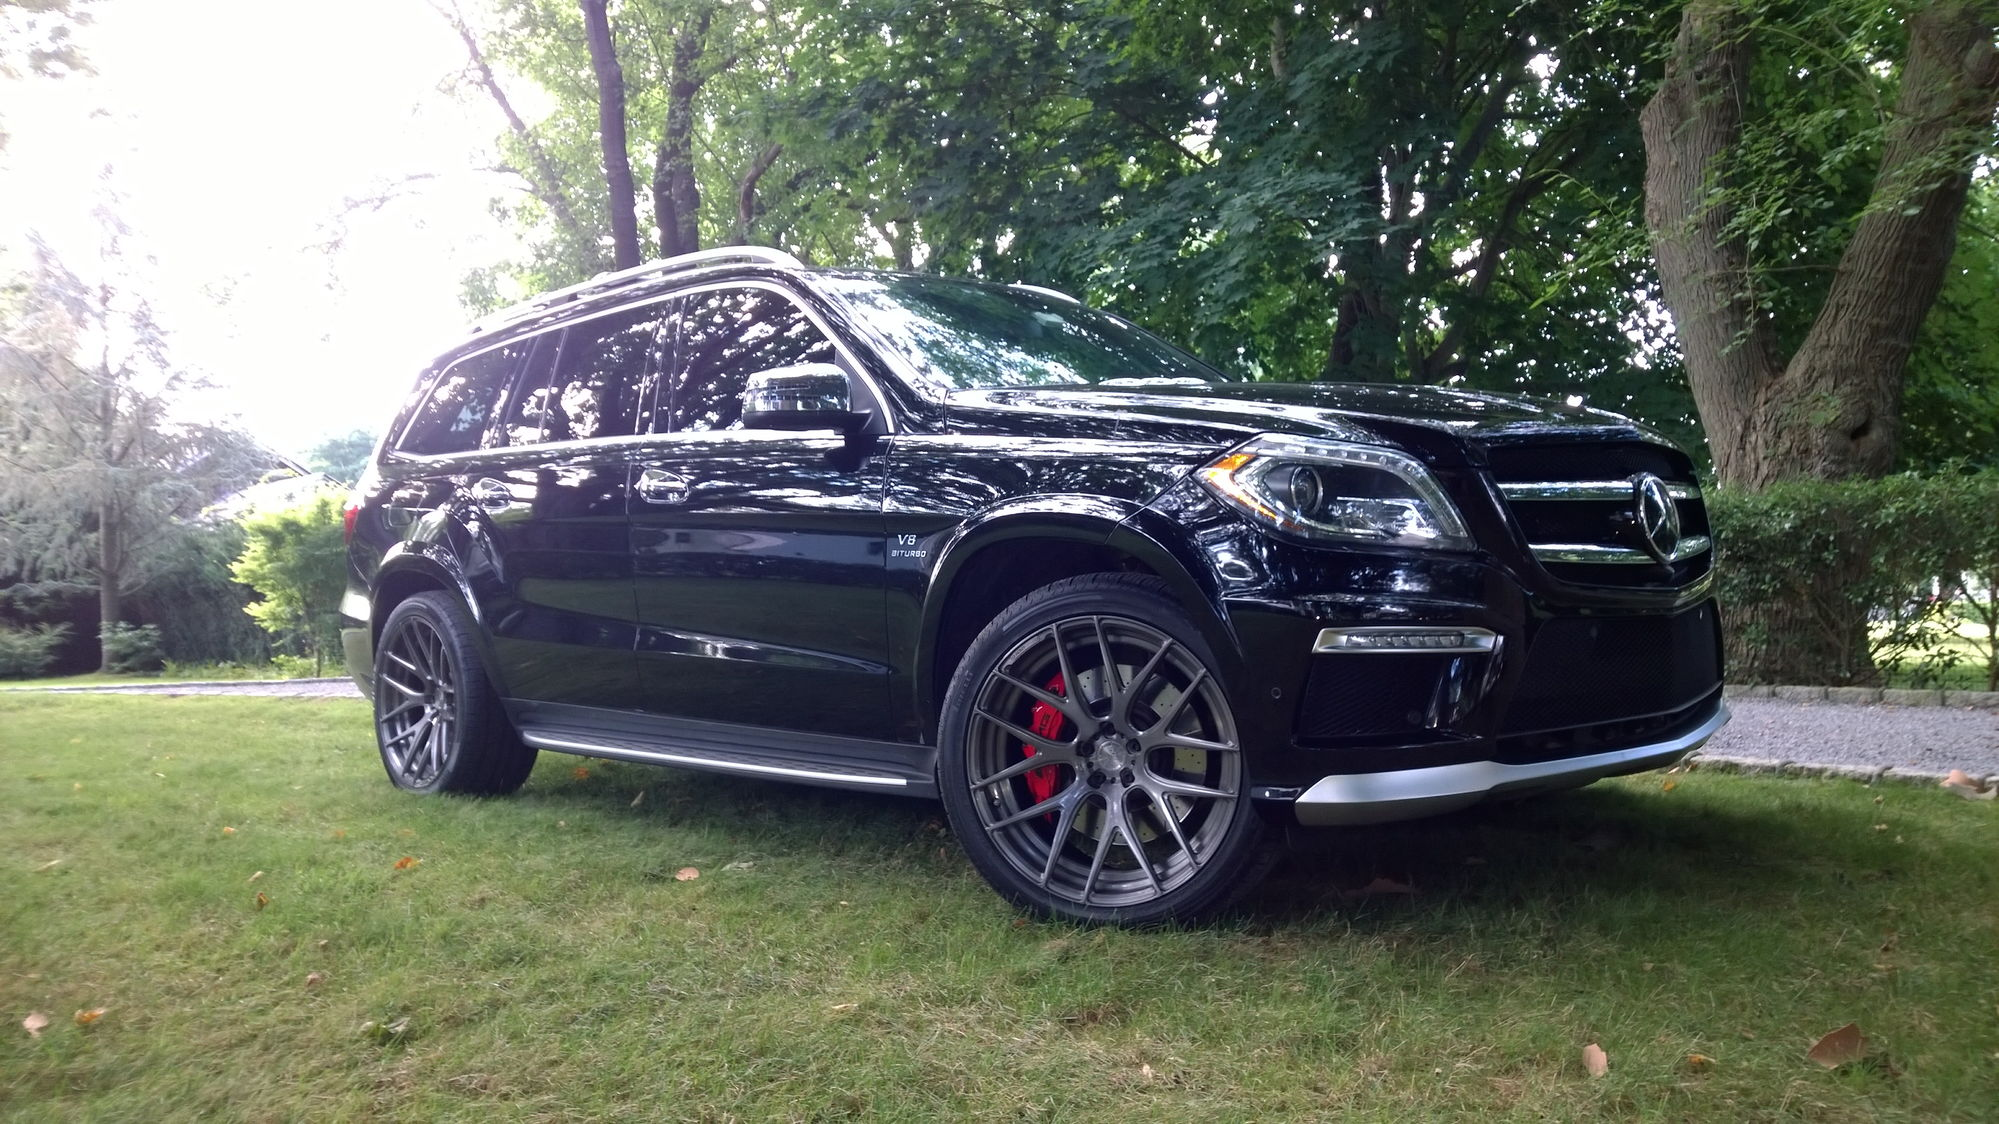 285 40 22 or 305 40 22 for 2013 gl450 forums for Mercedes benz gl450 tires